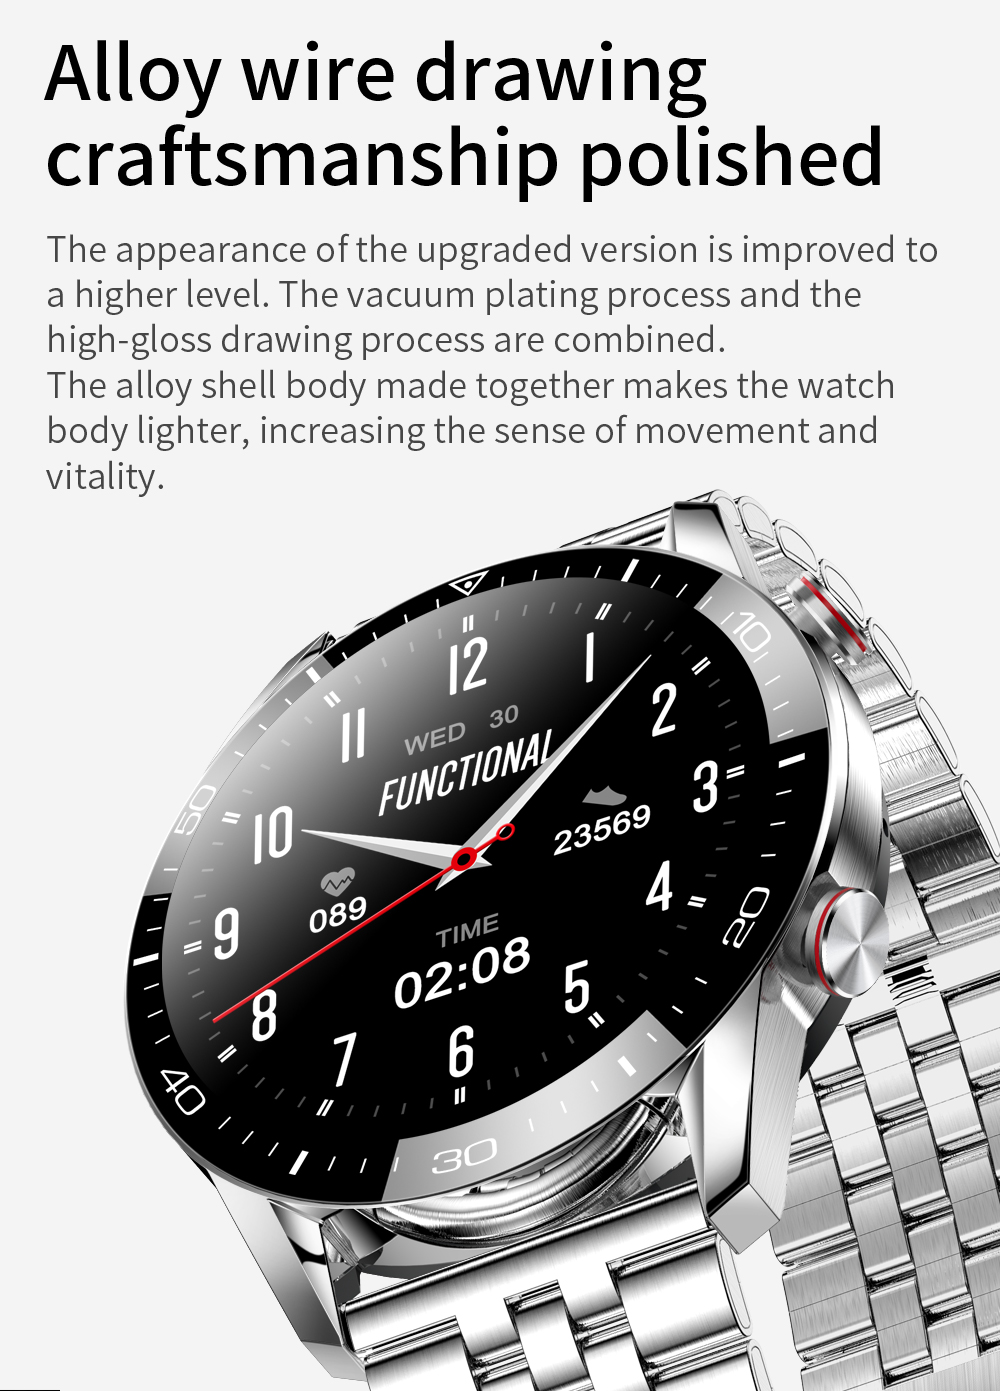 Hadfc65e9eb8d4a6694d766d8087a9565K New Smart Watch Men Bluetooth Call TK2-8 IP68 Waterproof Heart Rate Blood Pressure SmartWatch Fitness Tracker Sports Android IOS